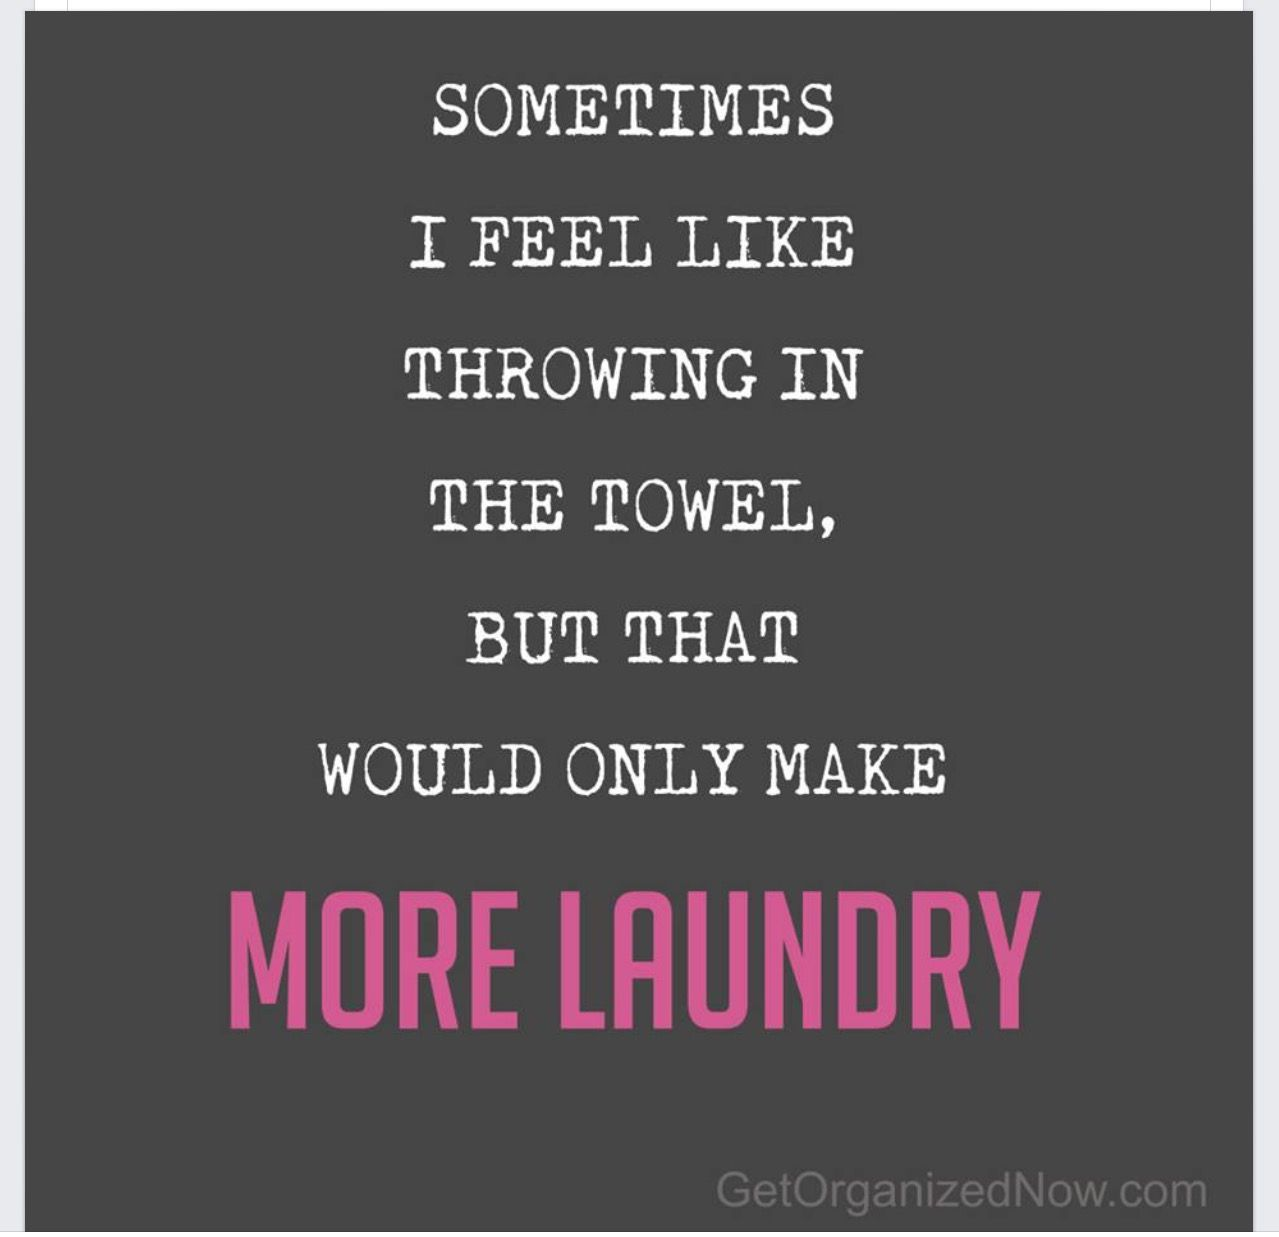 Throwing In The Towel Quotes Pinlinda Nsmentek On Quotes  Pinterest  Funny Things Amen